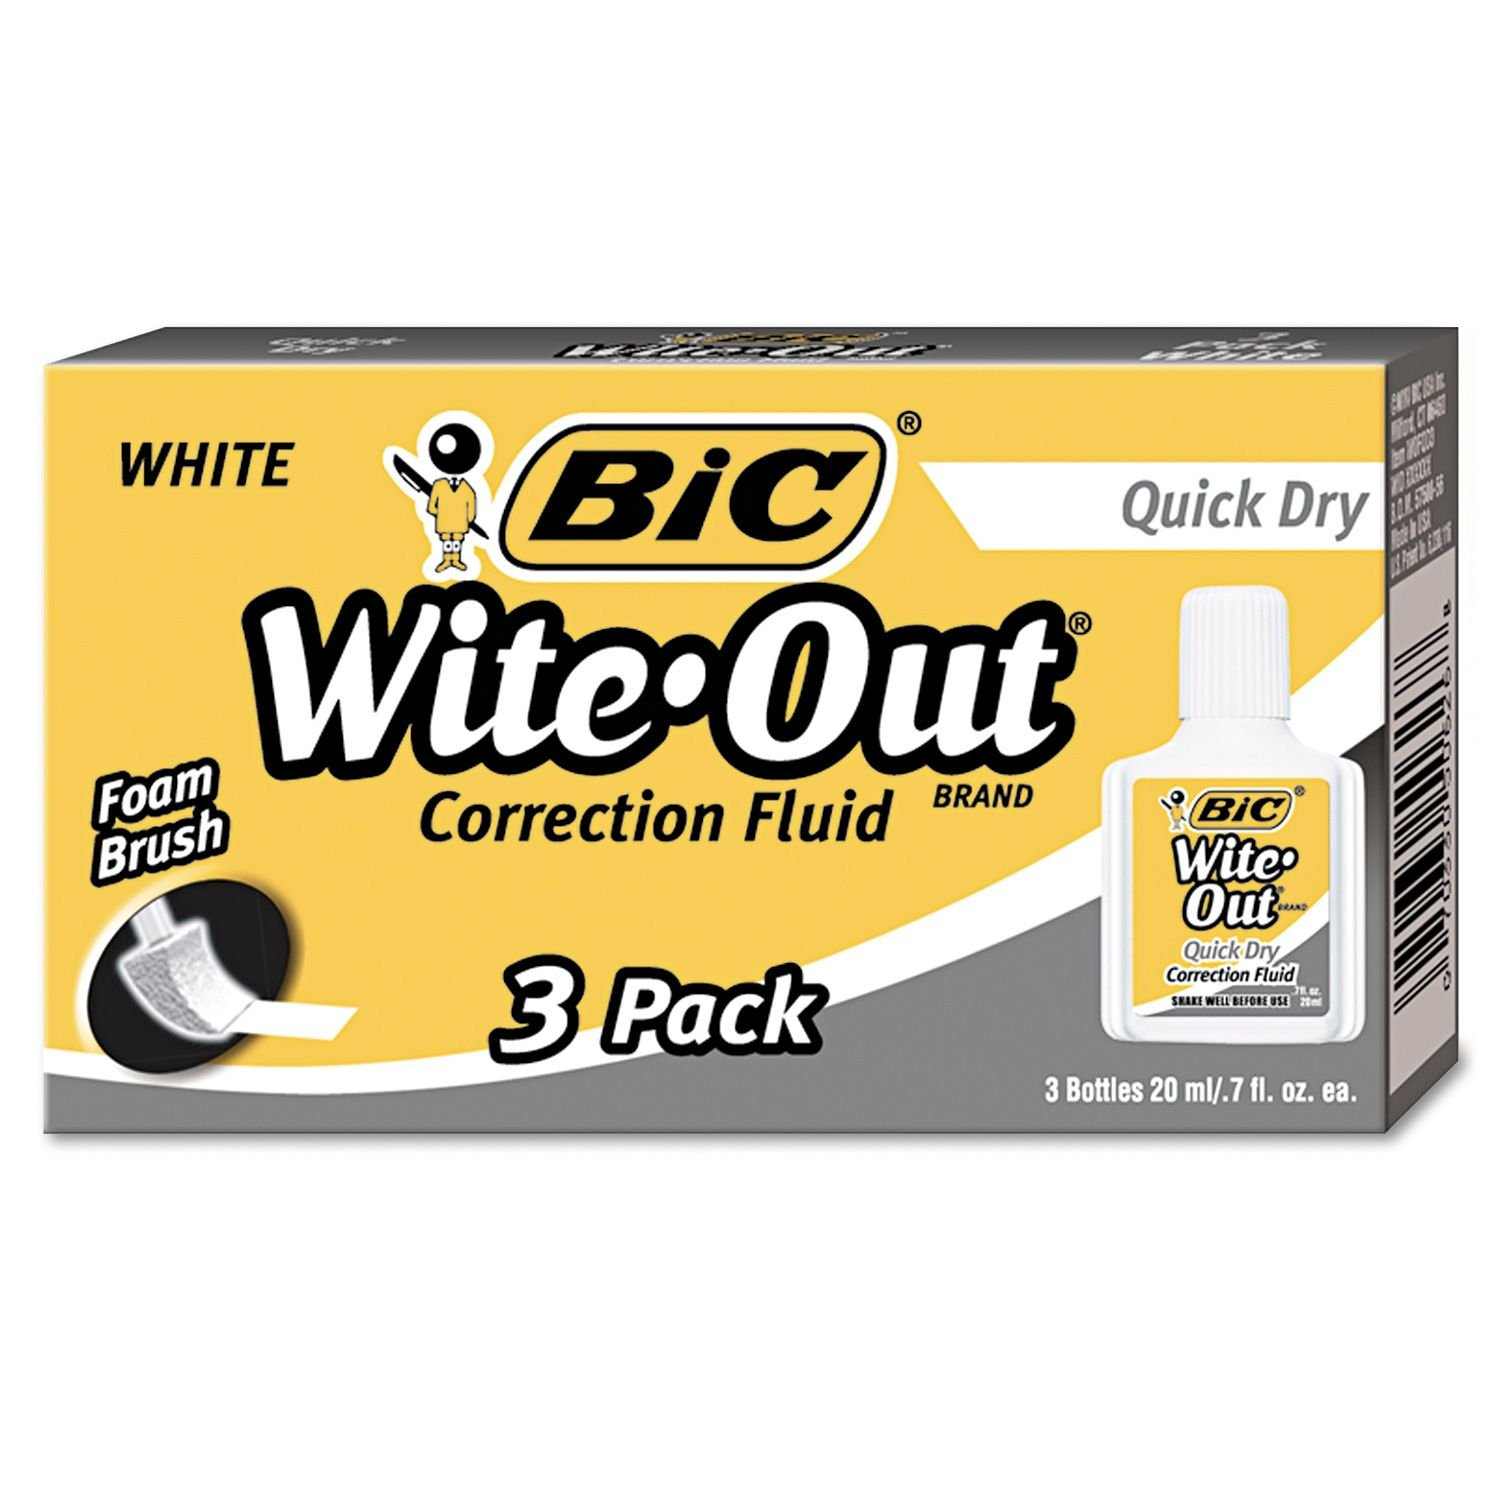 BIC WOFQD324 Wite-Out Quick Dry Correction Fluid, 20 ml Bottle, White, 3/Pack by BIC